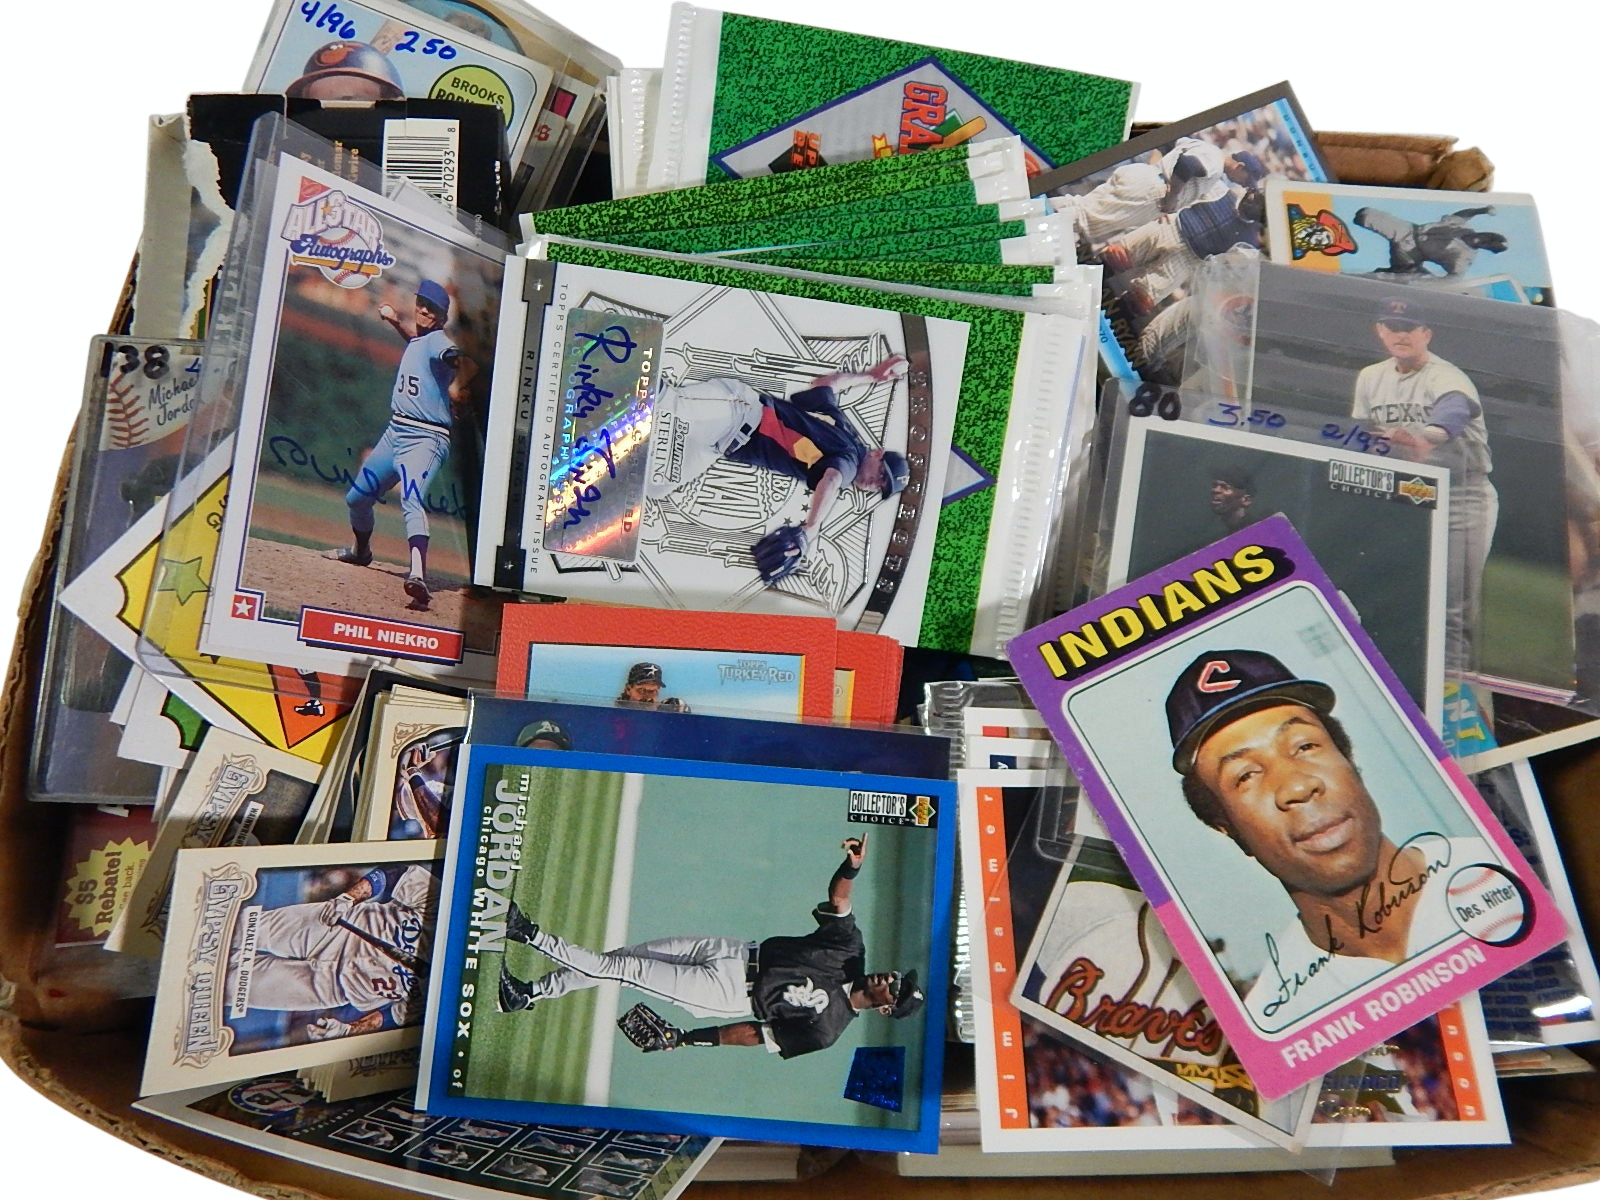 Box Full of Sport Cards with Stars, Cards from 1960s, 1950 Bowman Sid Gordon